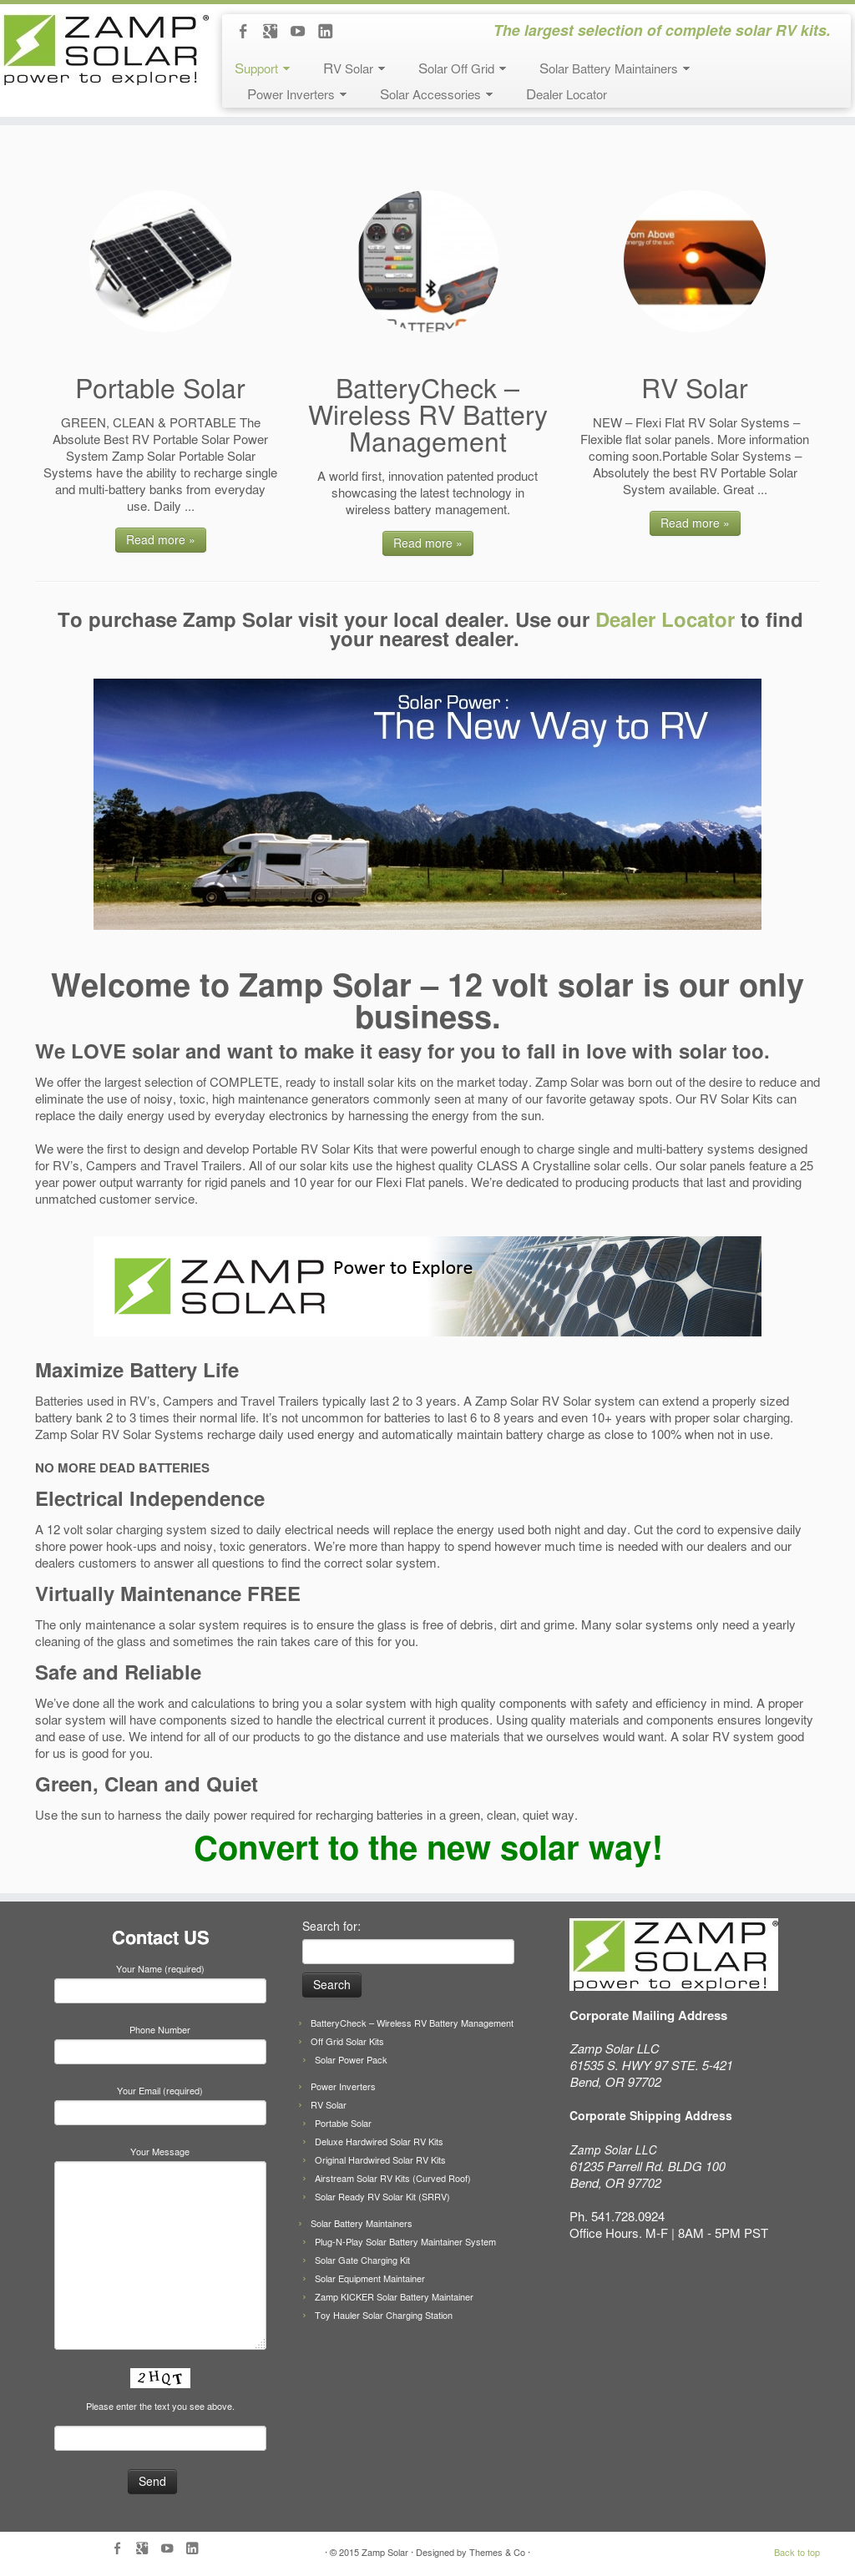 Zamp Solar Competitors, Revenue and Employees - Owler